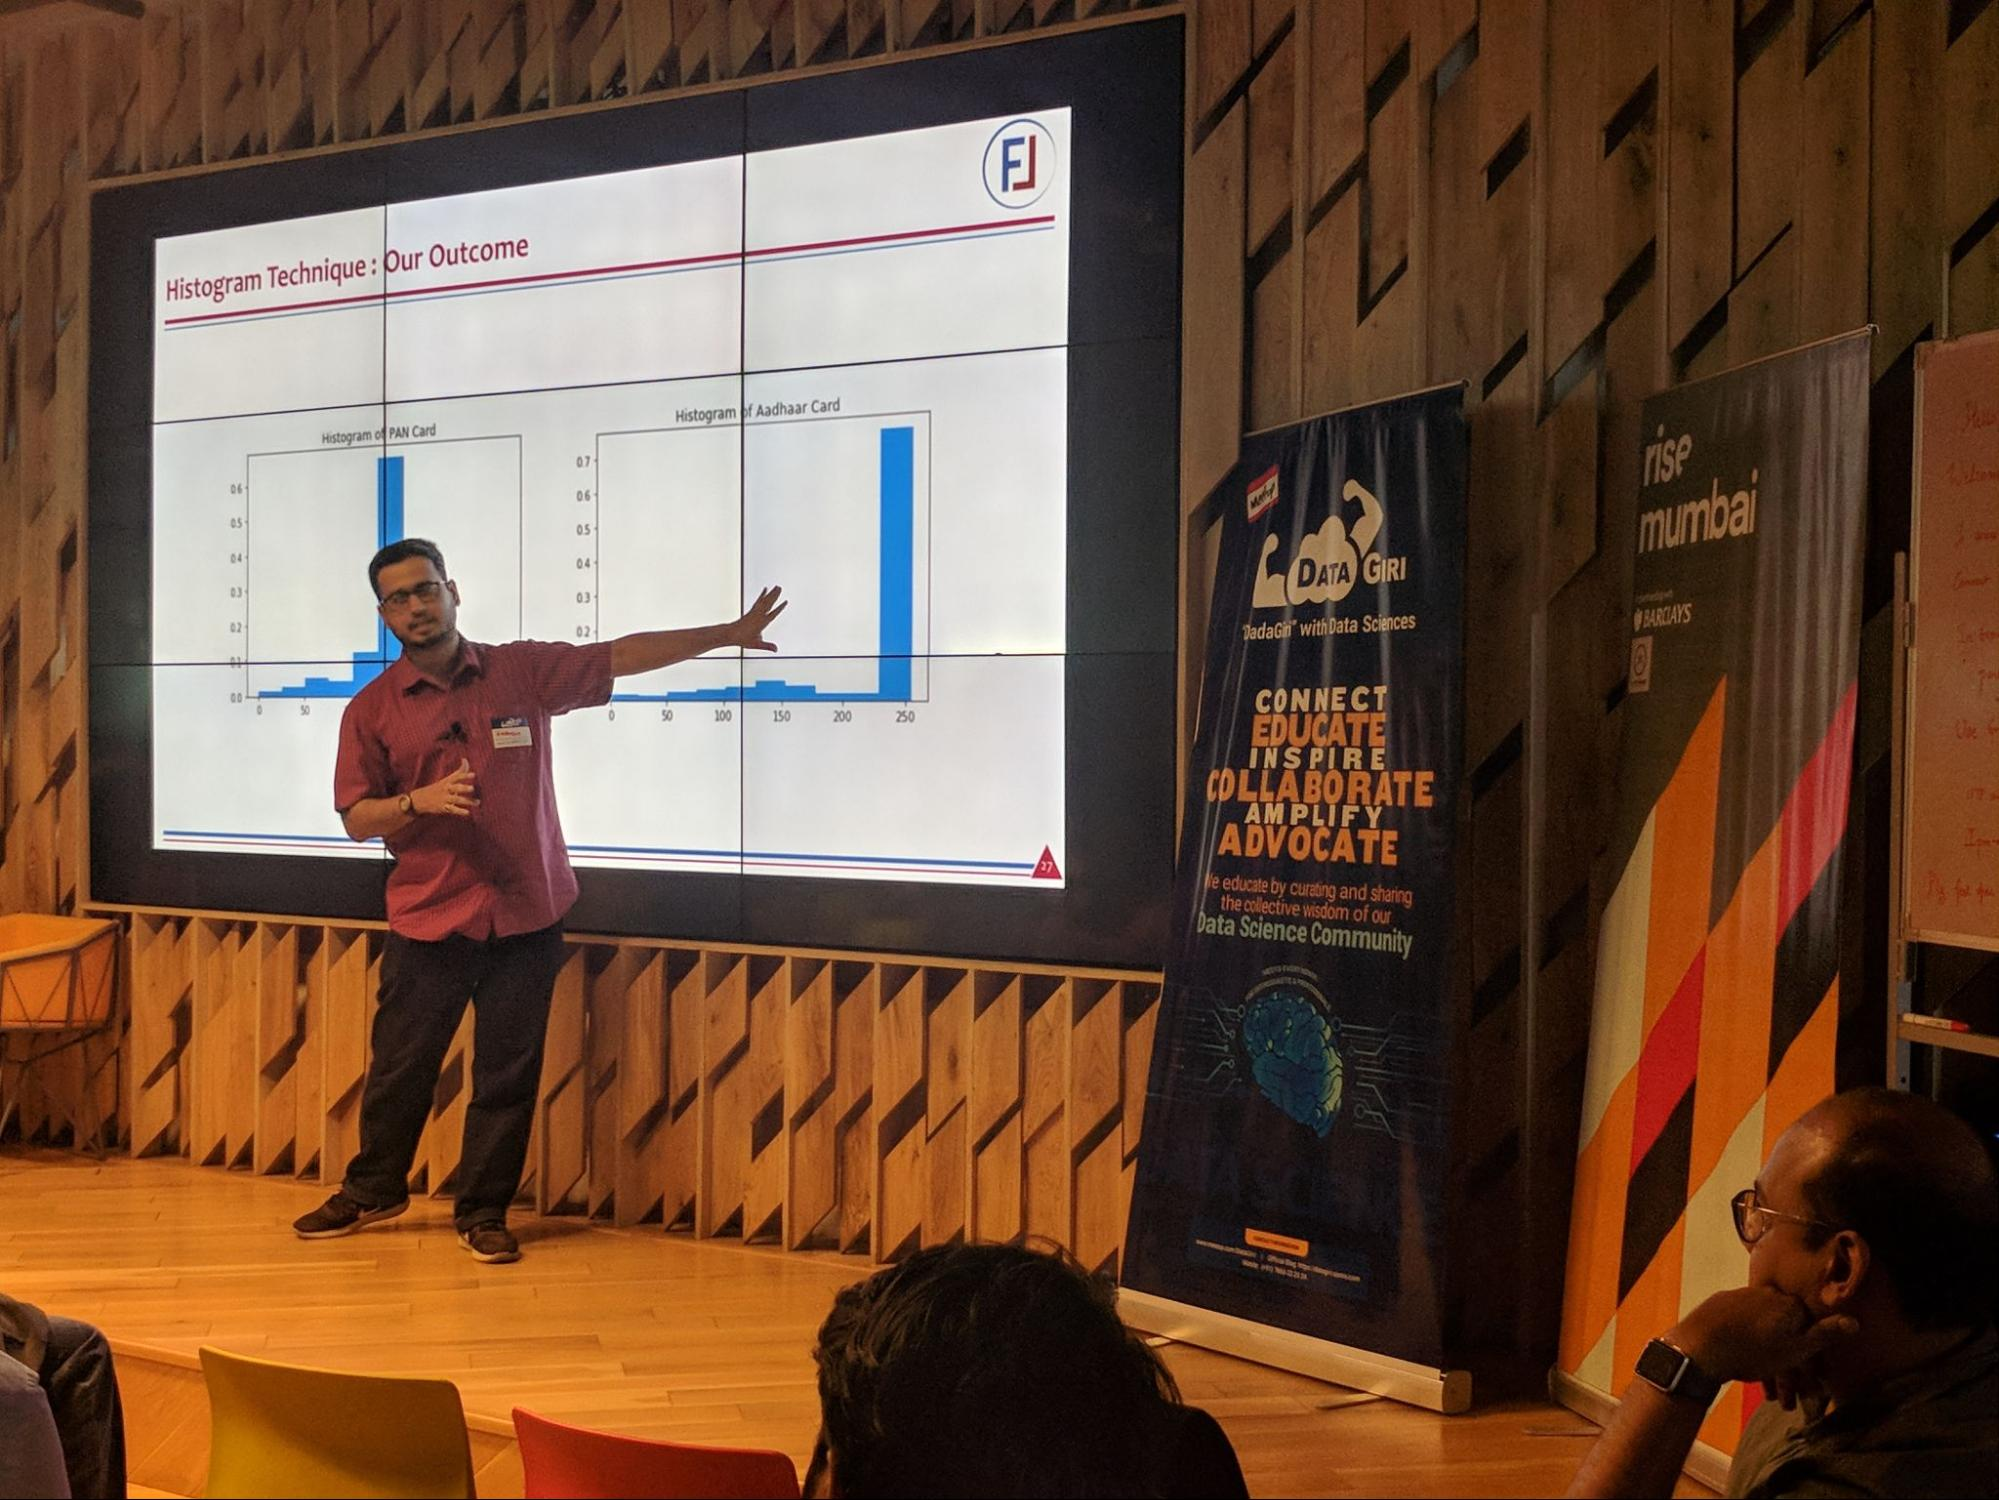 Image shows Bhavesh Bhatt onstage giving a presentation